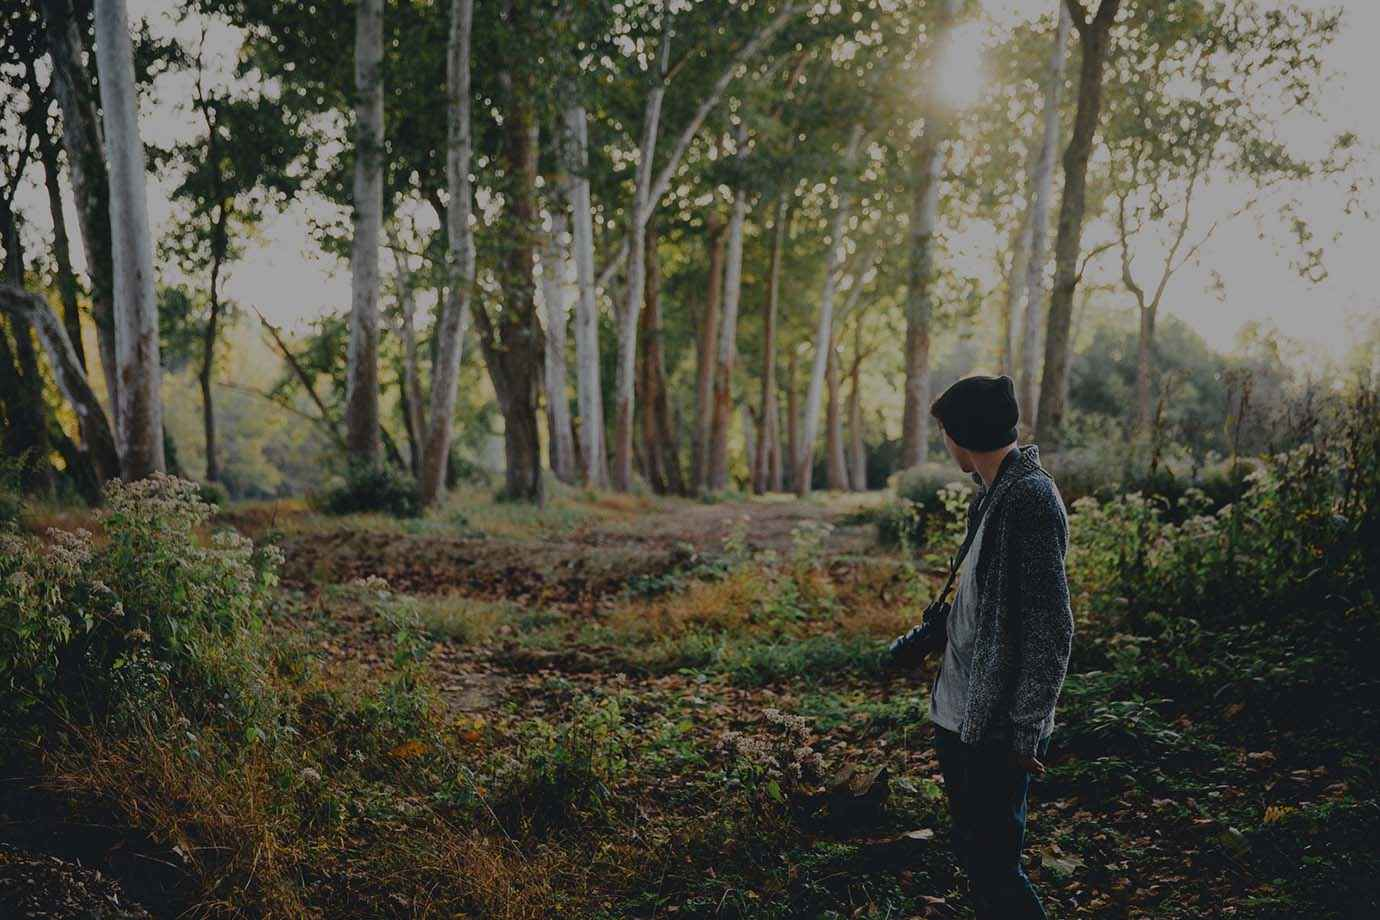 Someone standing with a photo camera in a forest surrounded by trees.